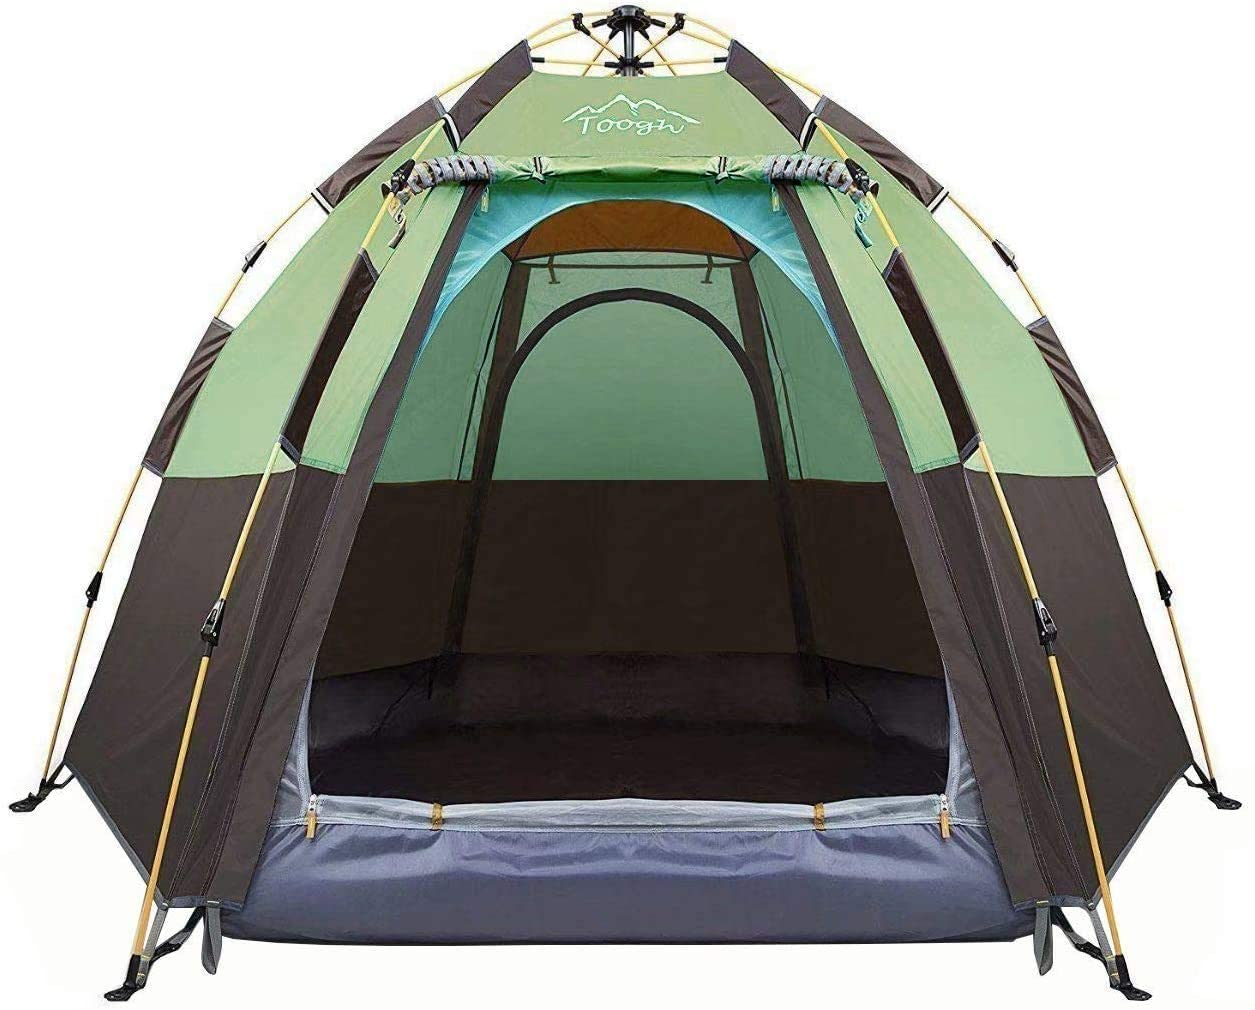 Toogh 3-4 Person Backpacking Hexagon Camping Tent